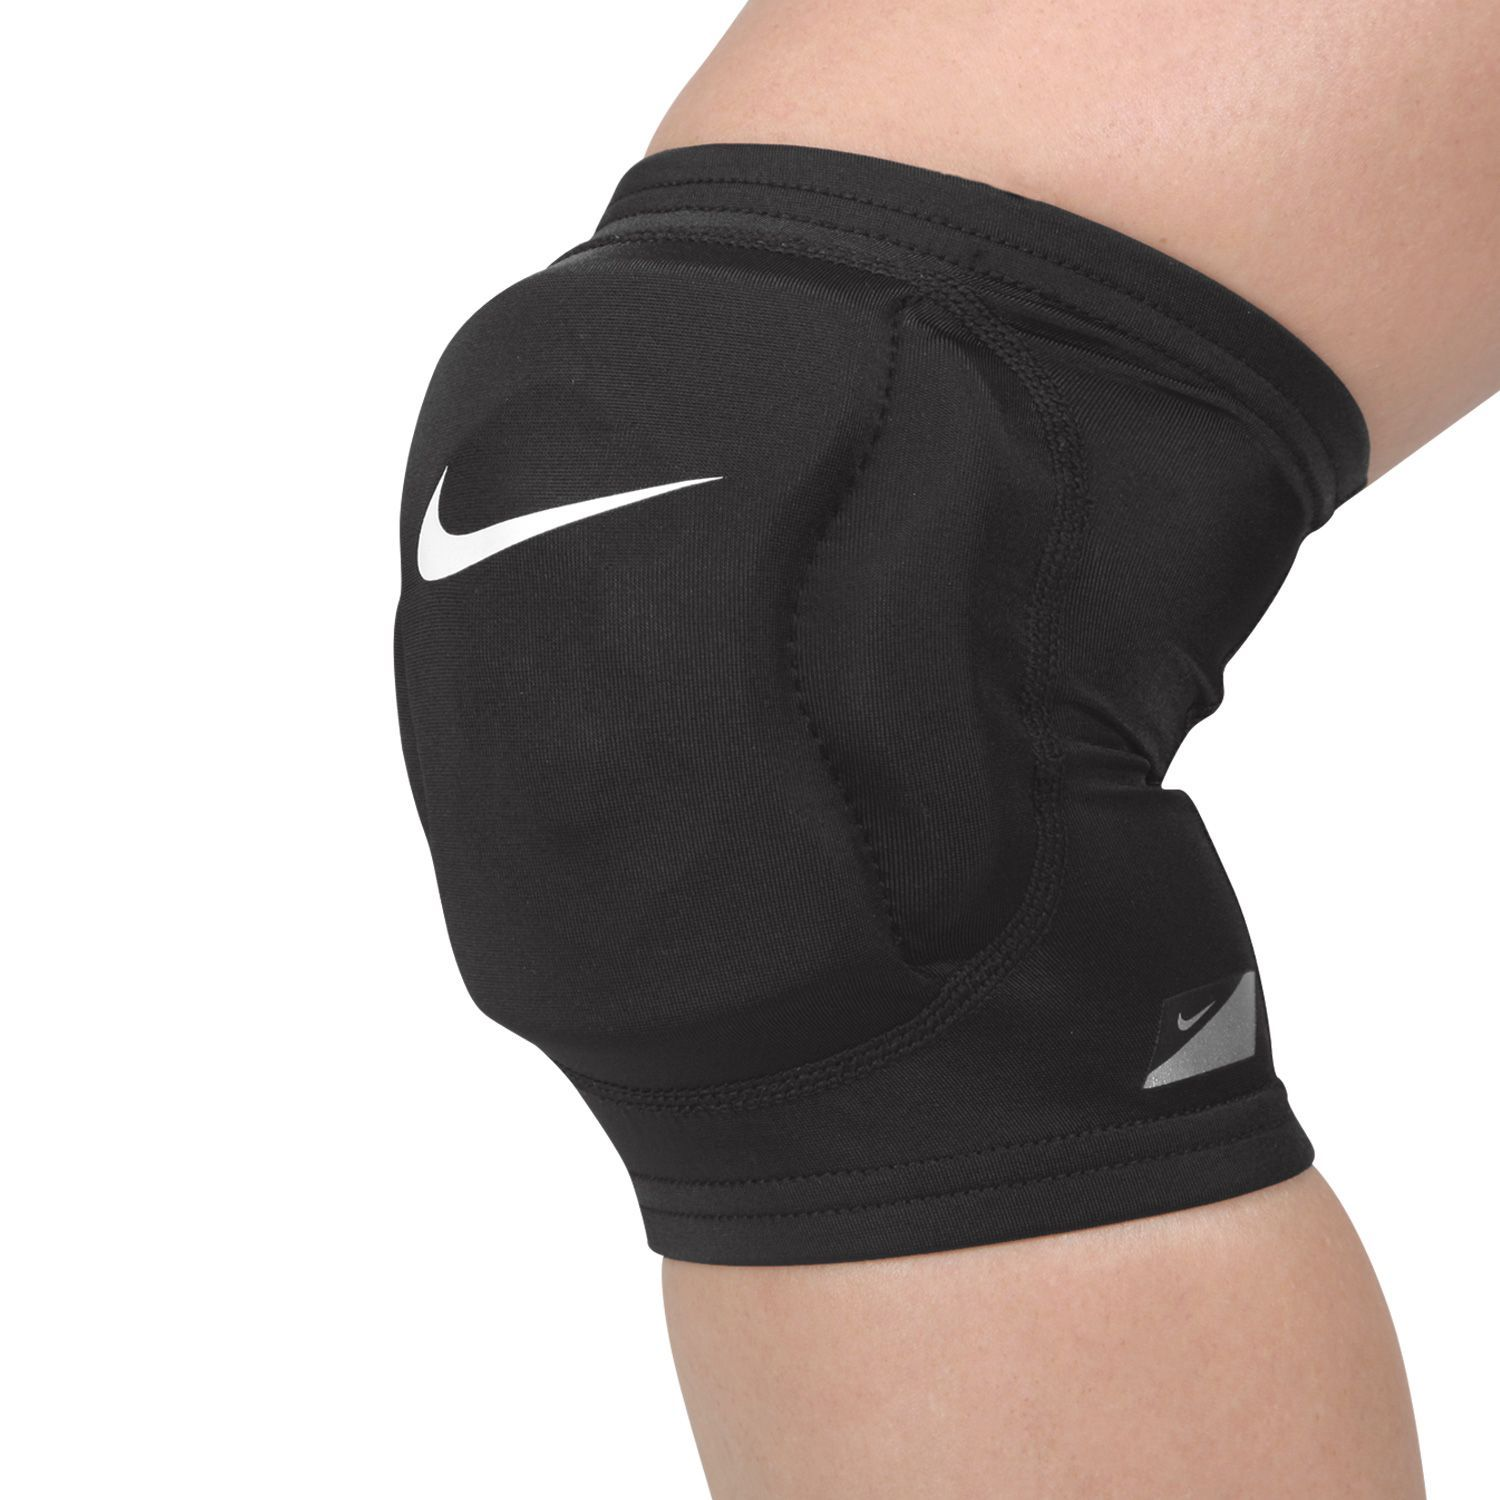 Pin By Leticia Jordan On My Sport Volleyball Knee Pads Volleyball Gear Nike Volleyball